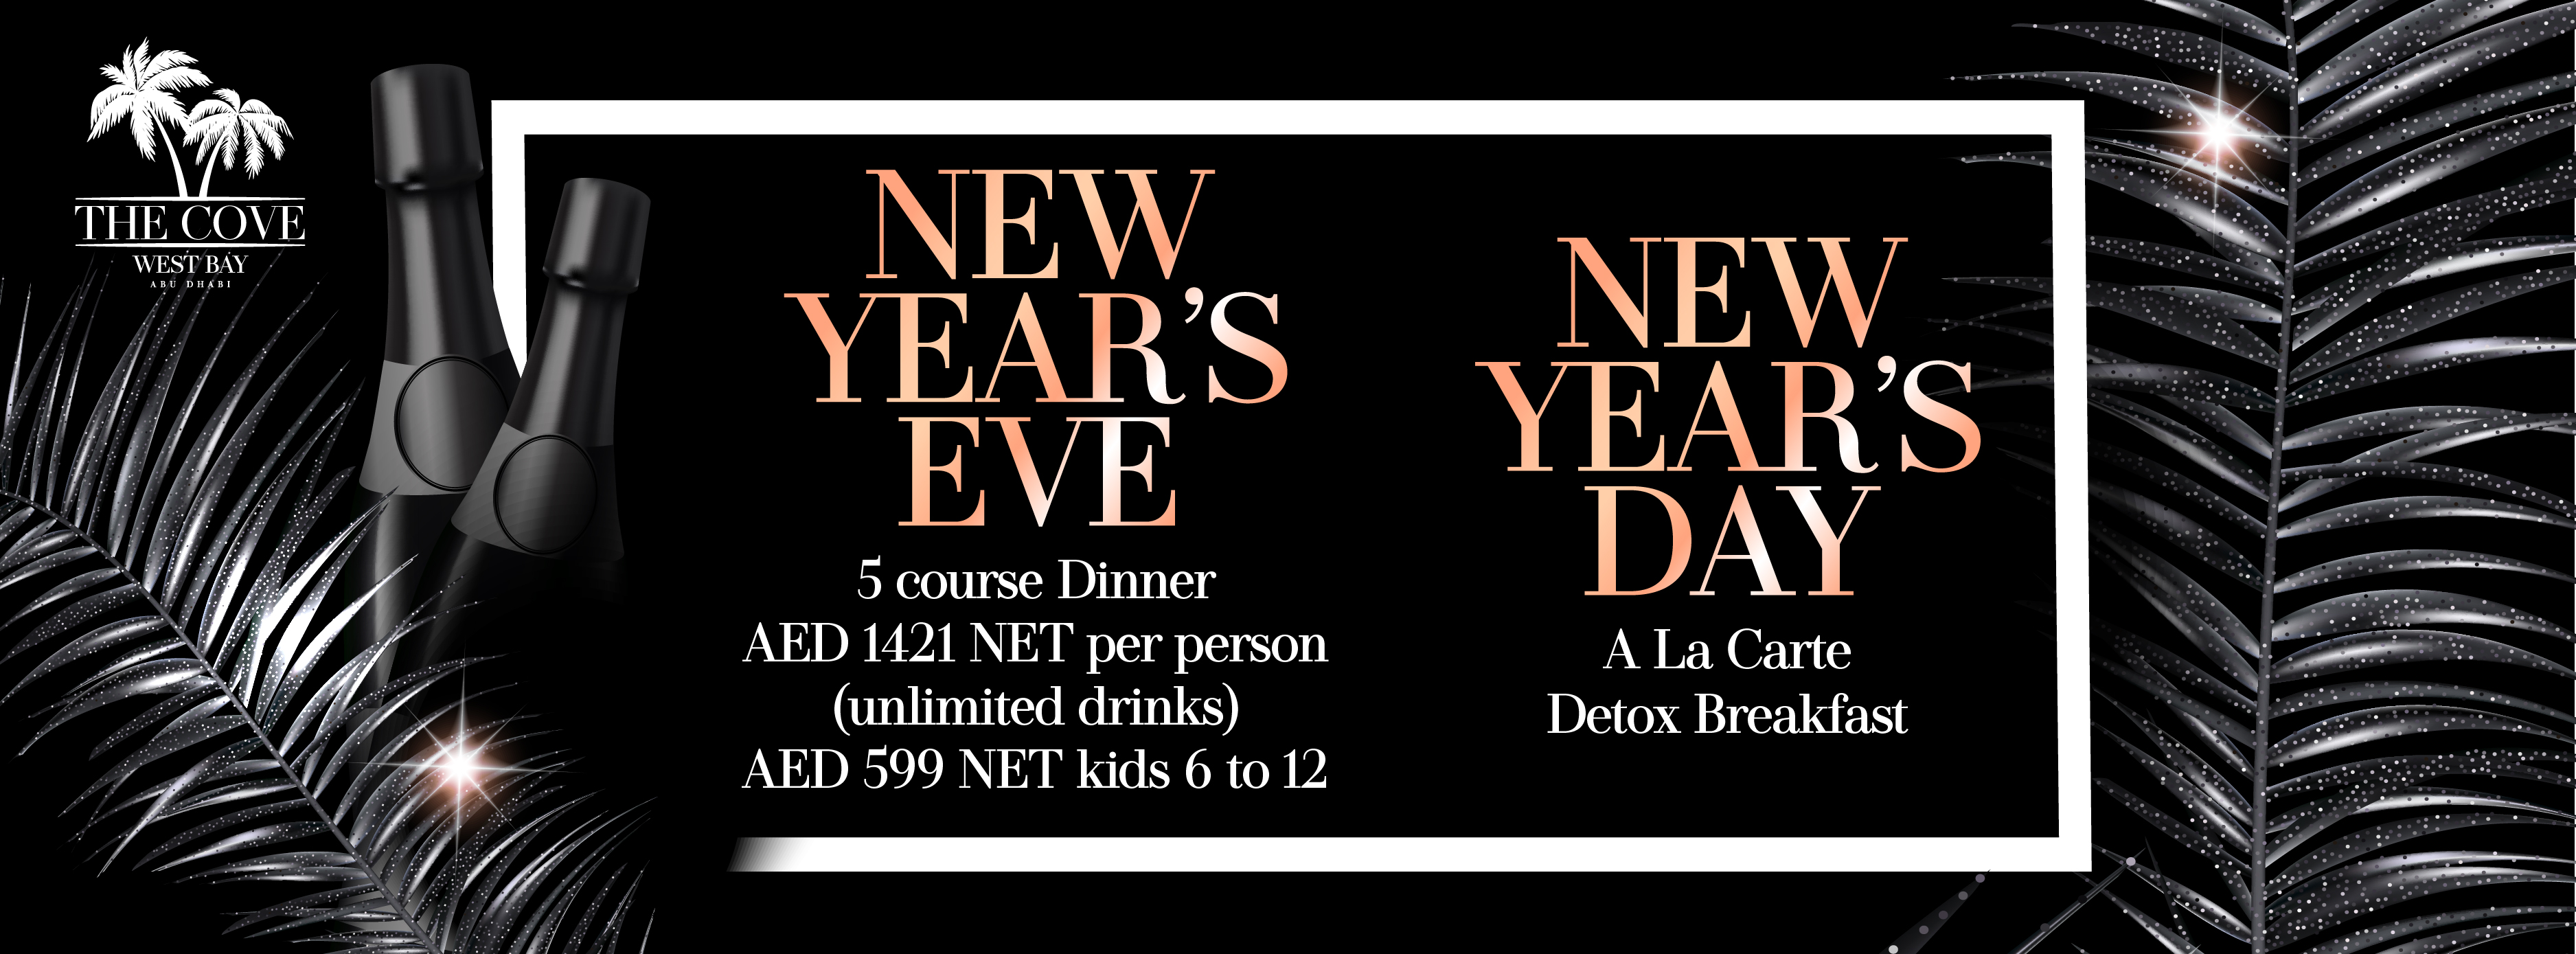 New Year's Eve & Day @ The Cove